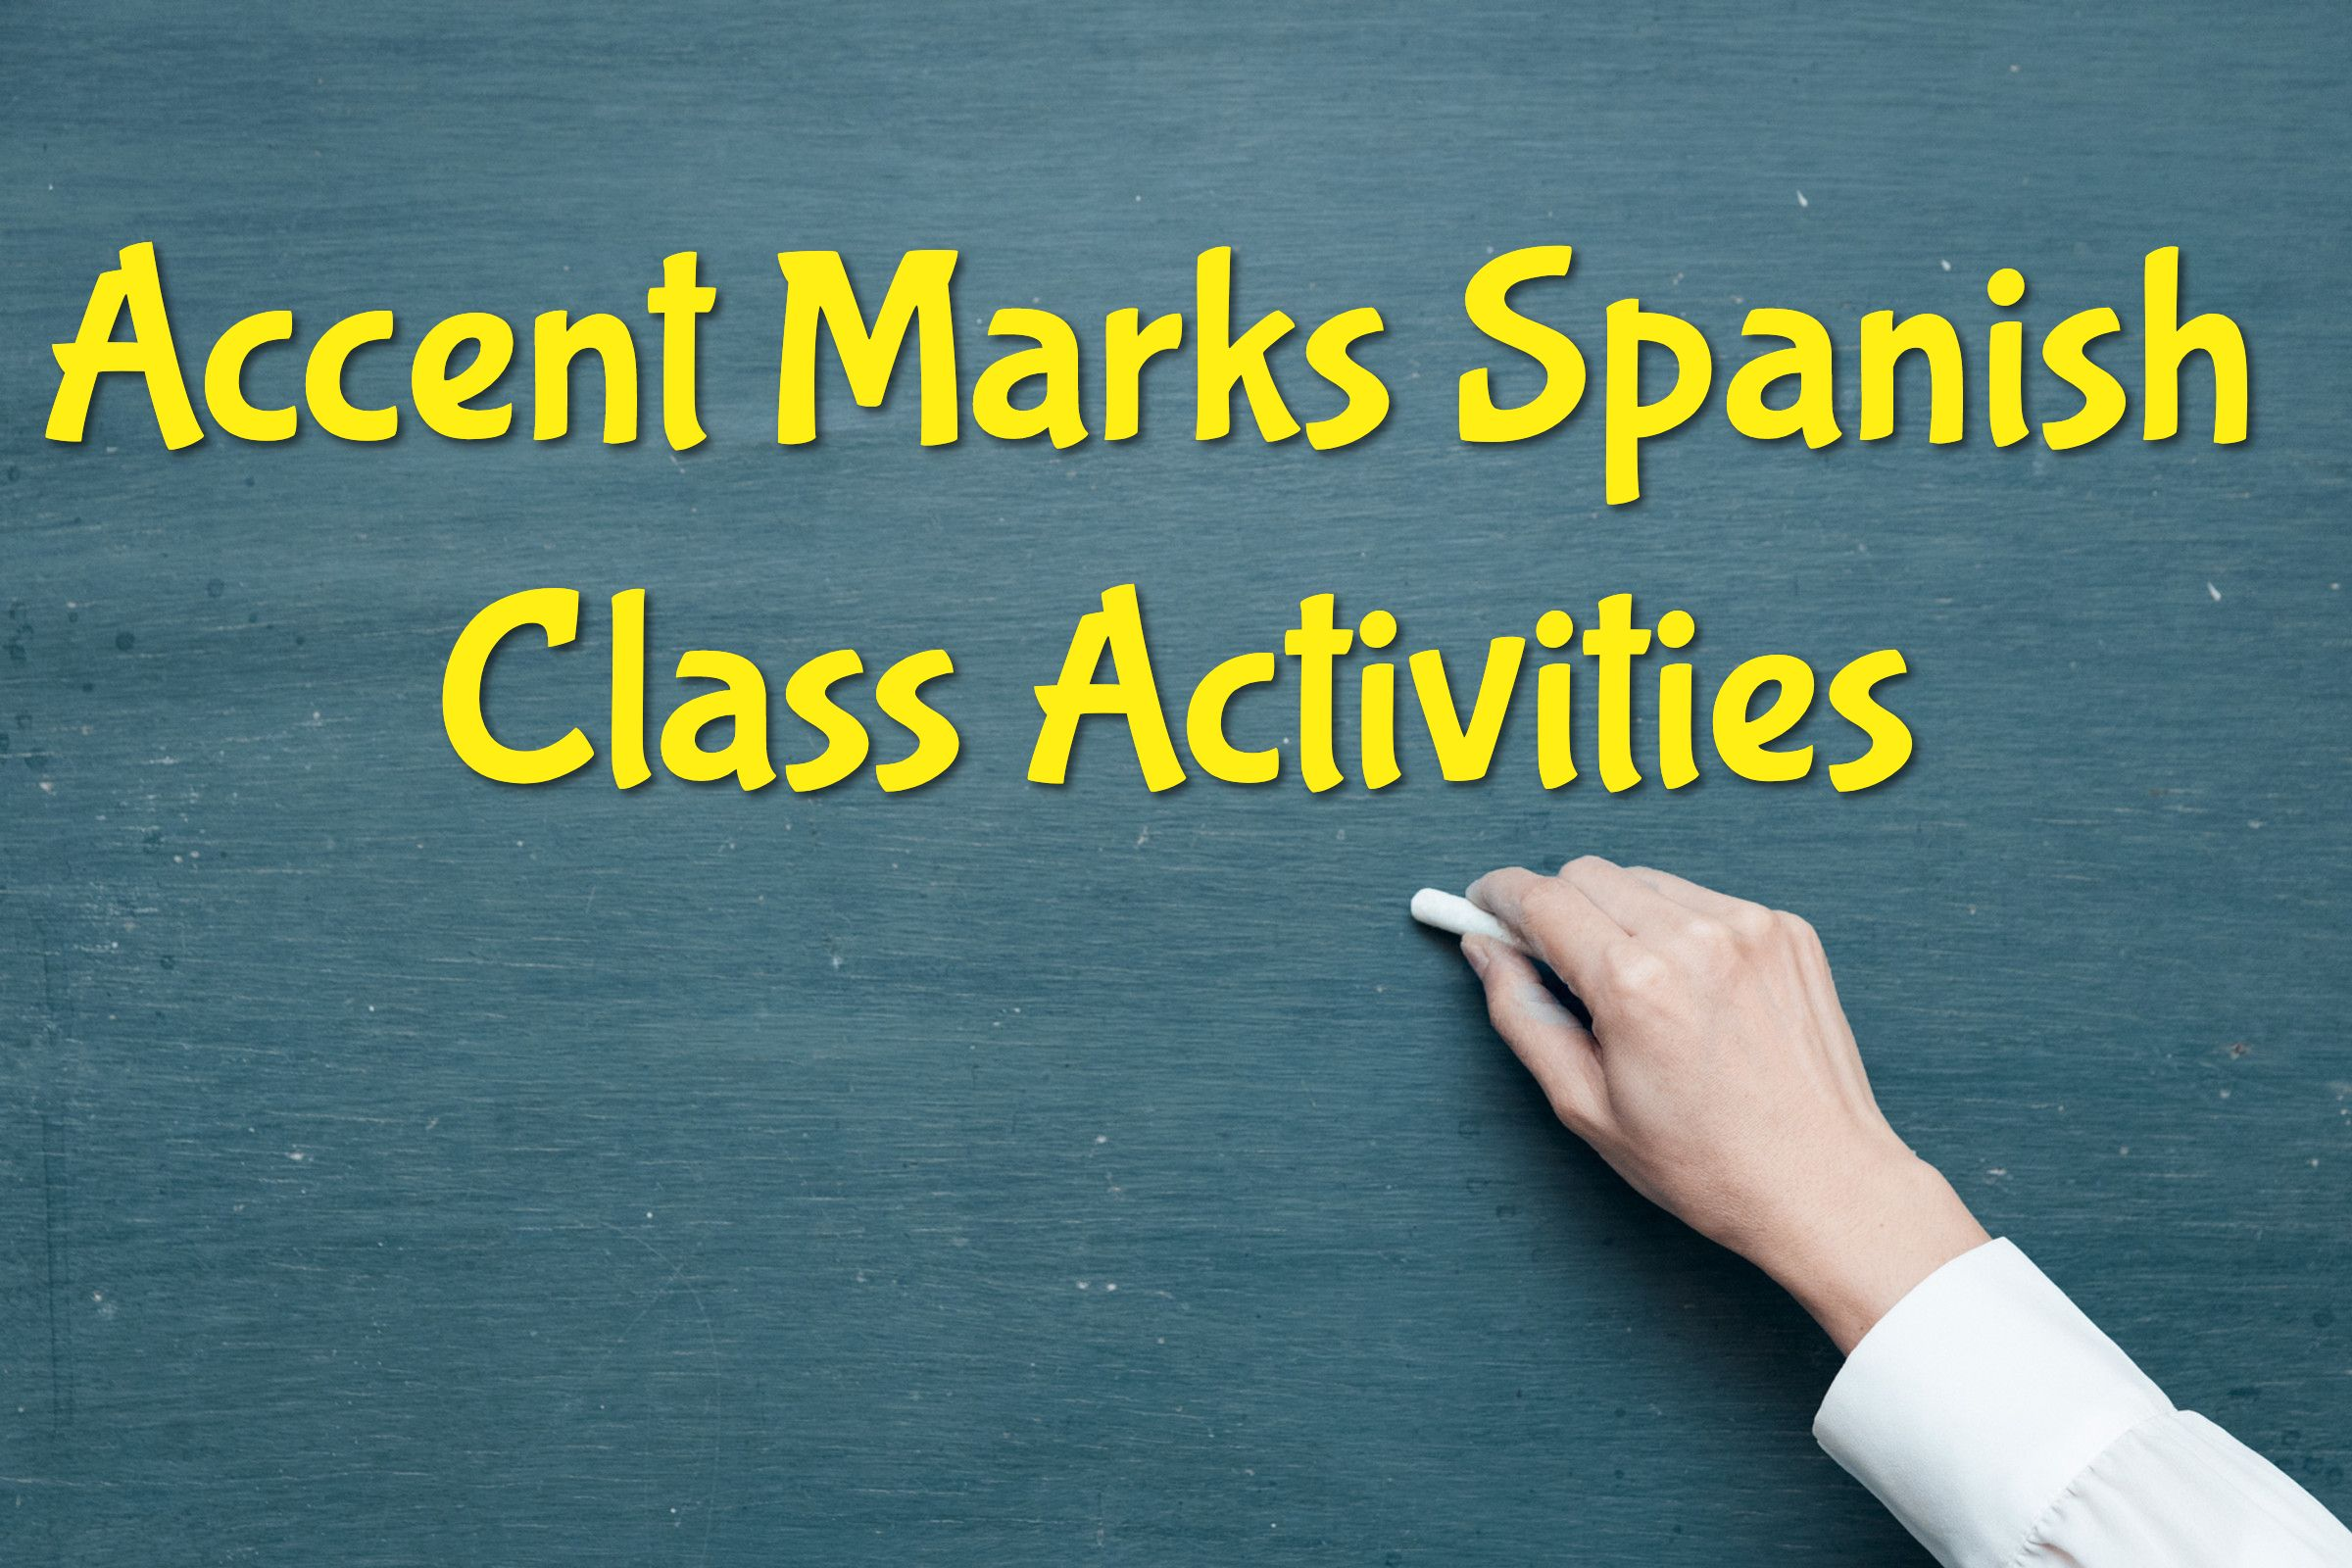 Accent Marks Spanish Class Activities